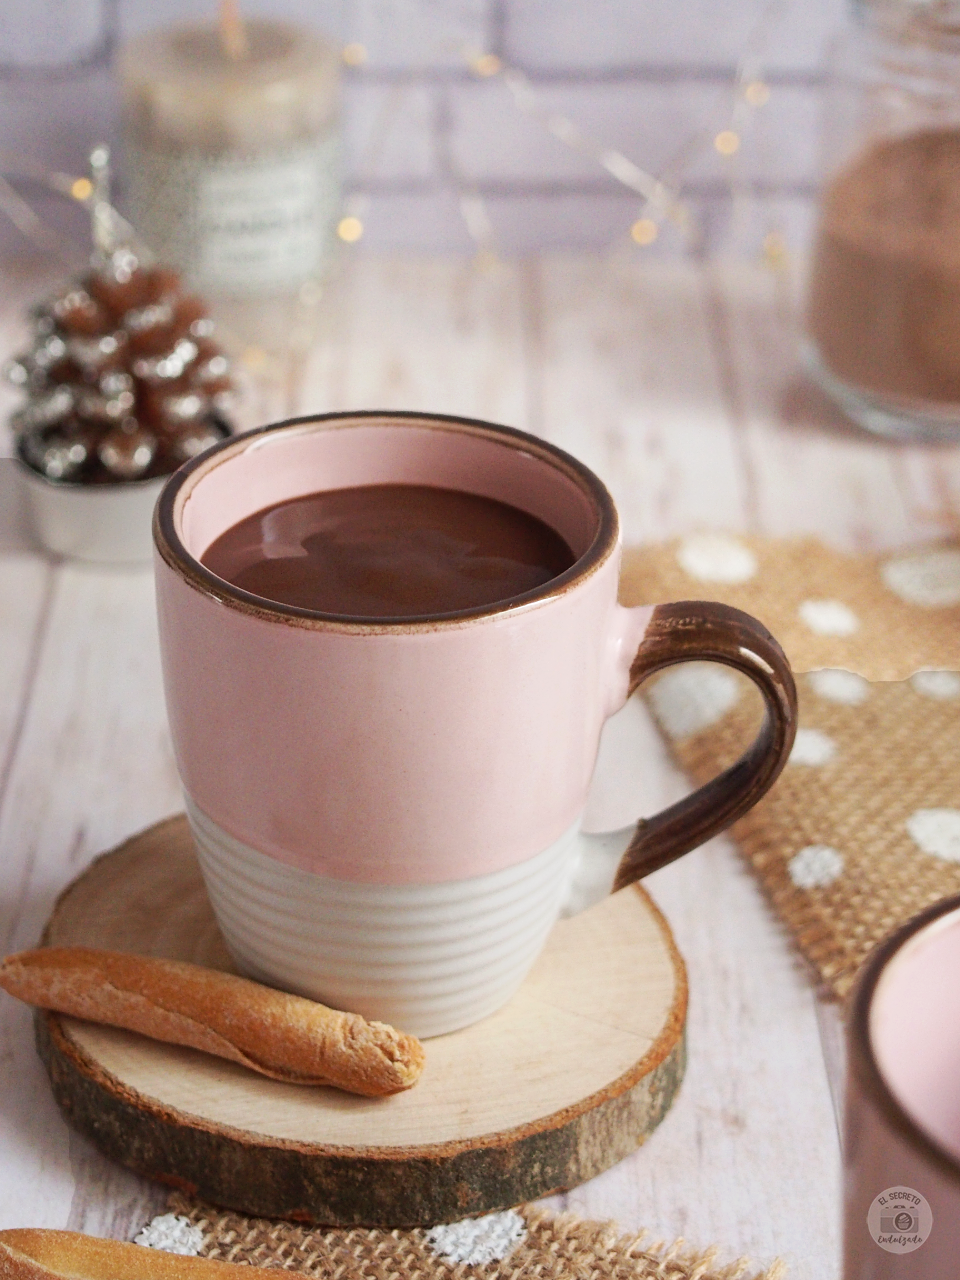 Chocolate caliente a la taza receta Hot Chocolate recipe